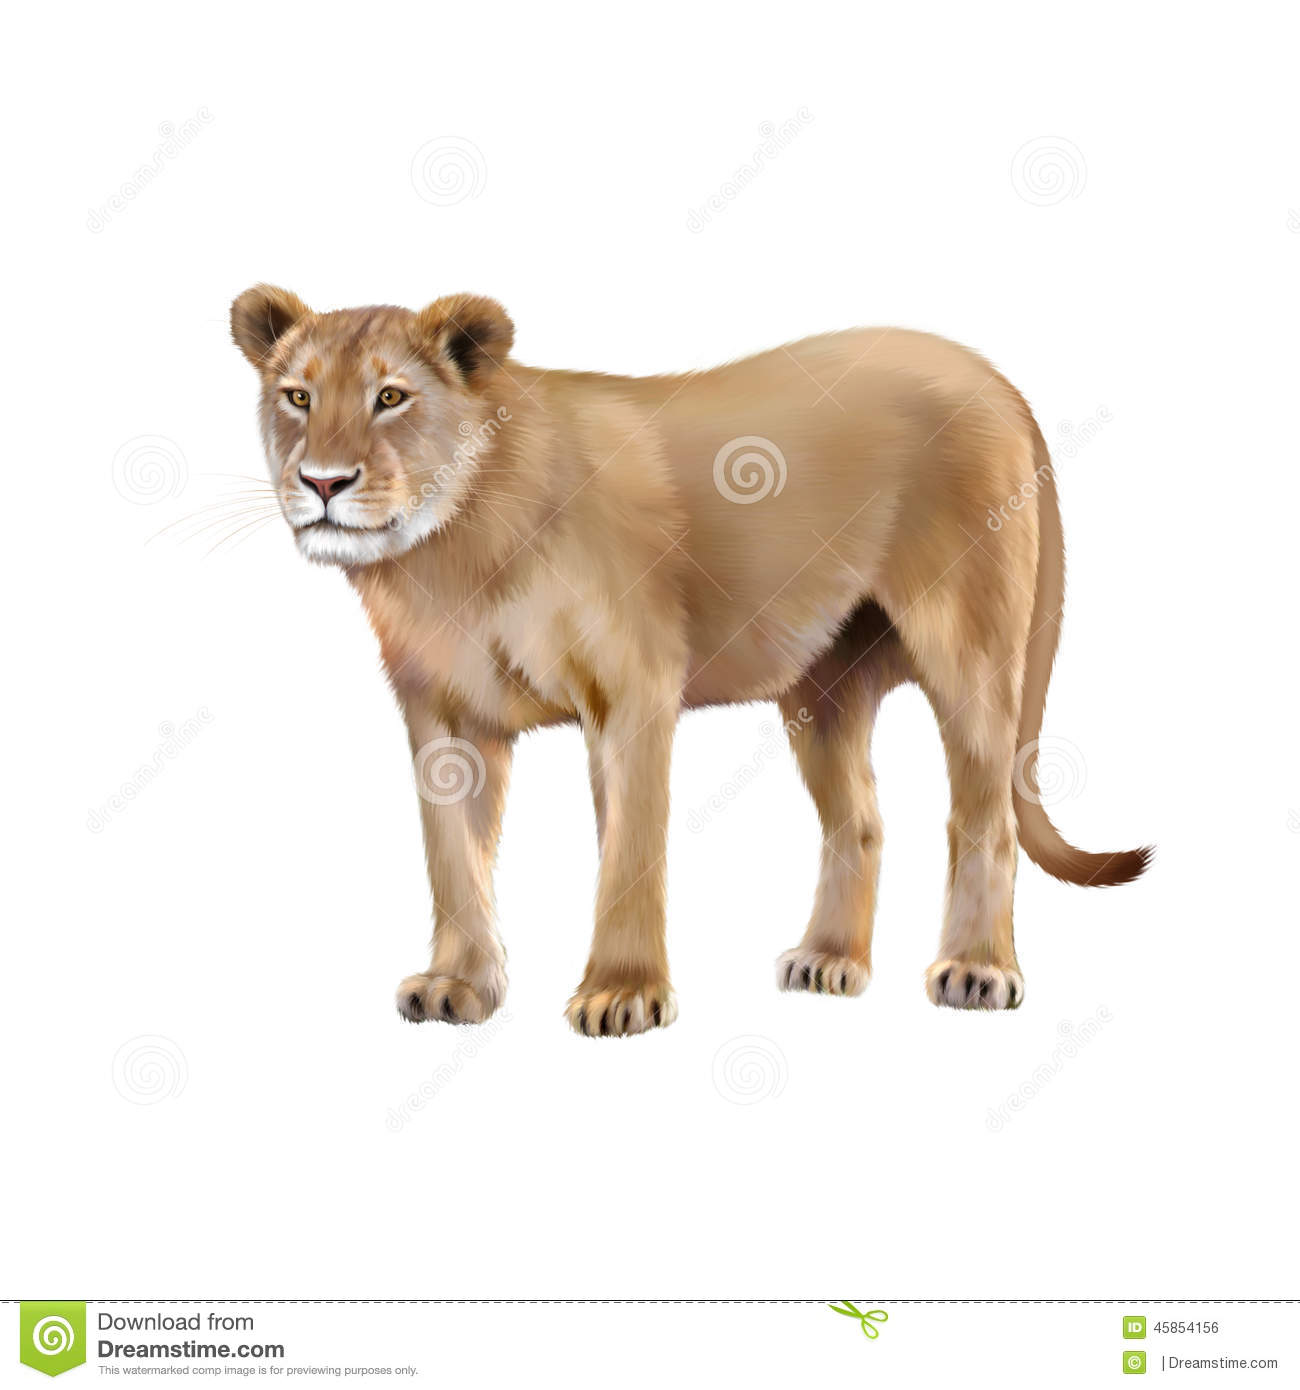 Lioness - Panthera leo in front